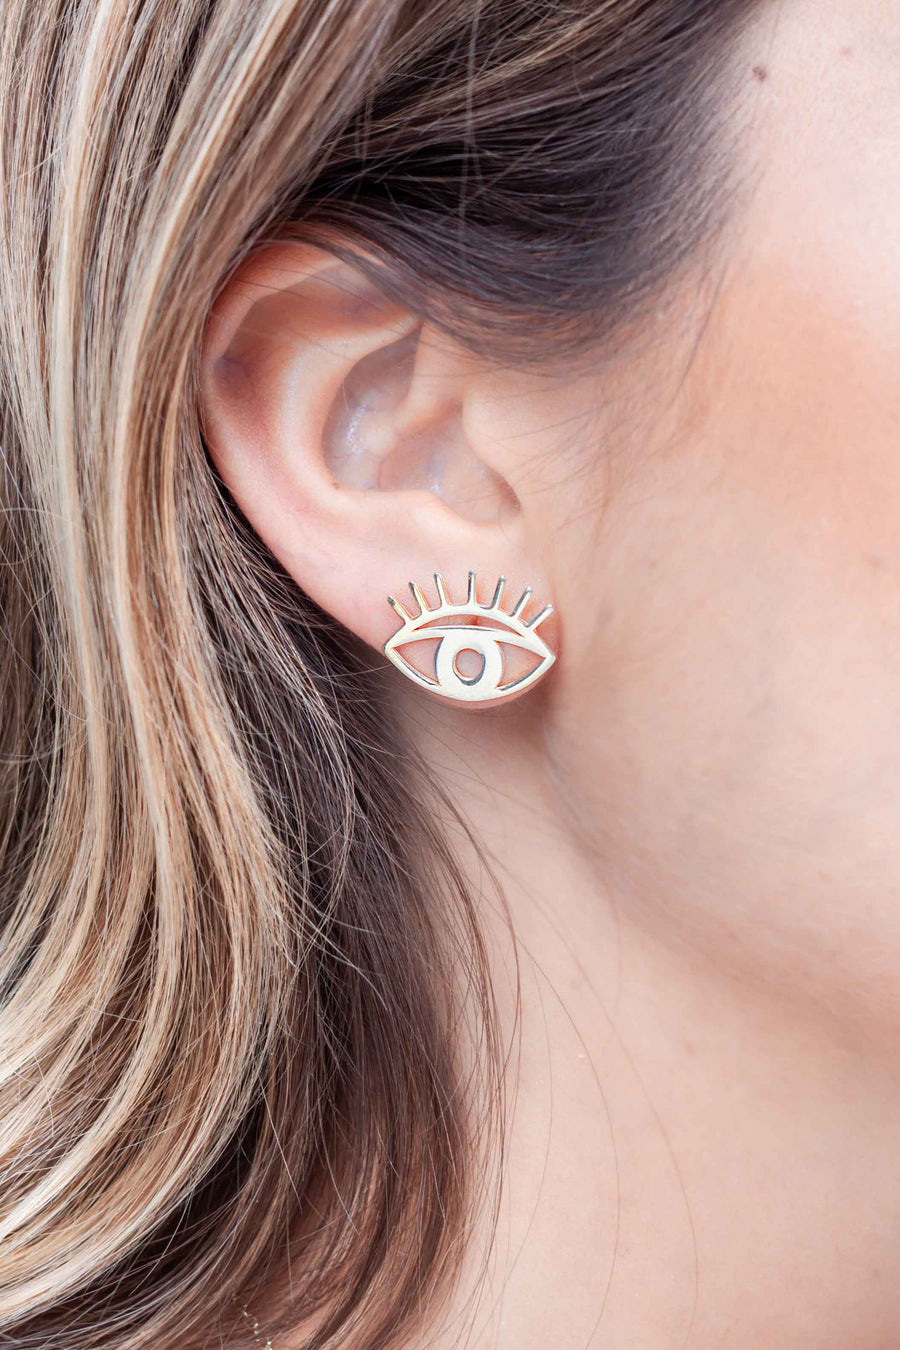 Gold plated abstract eye studs worn on ear